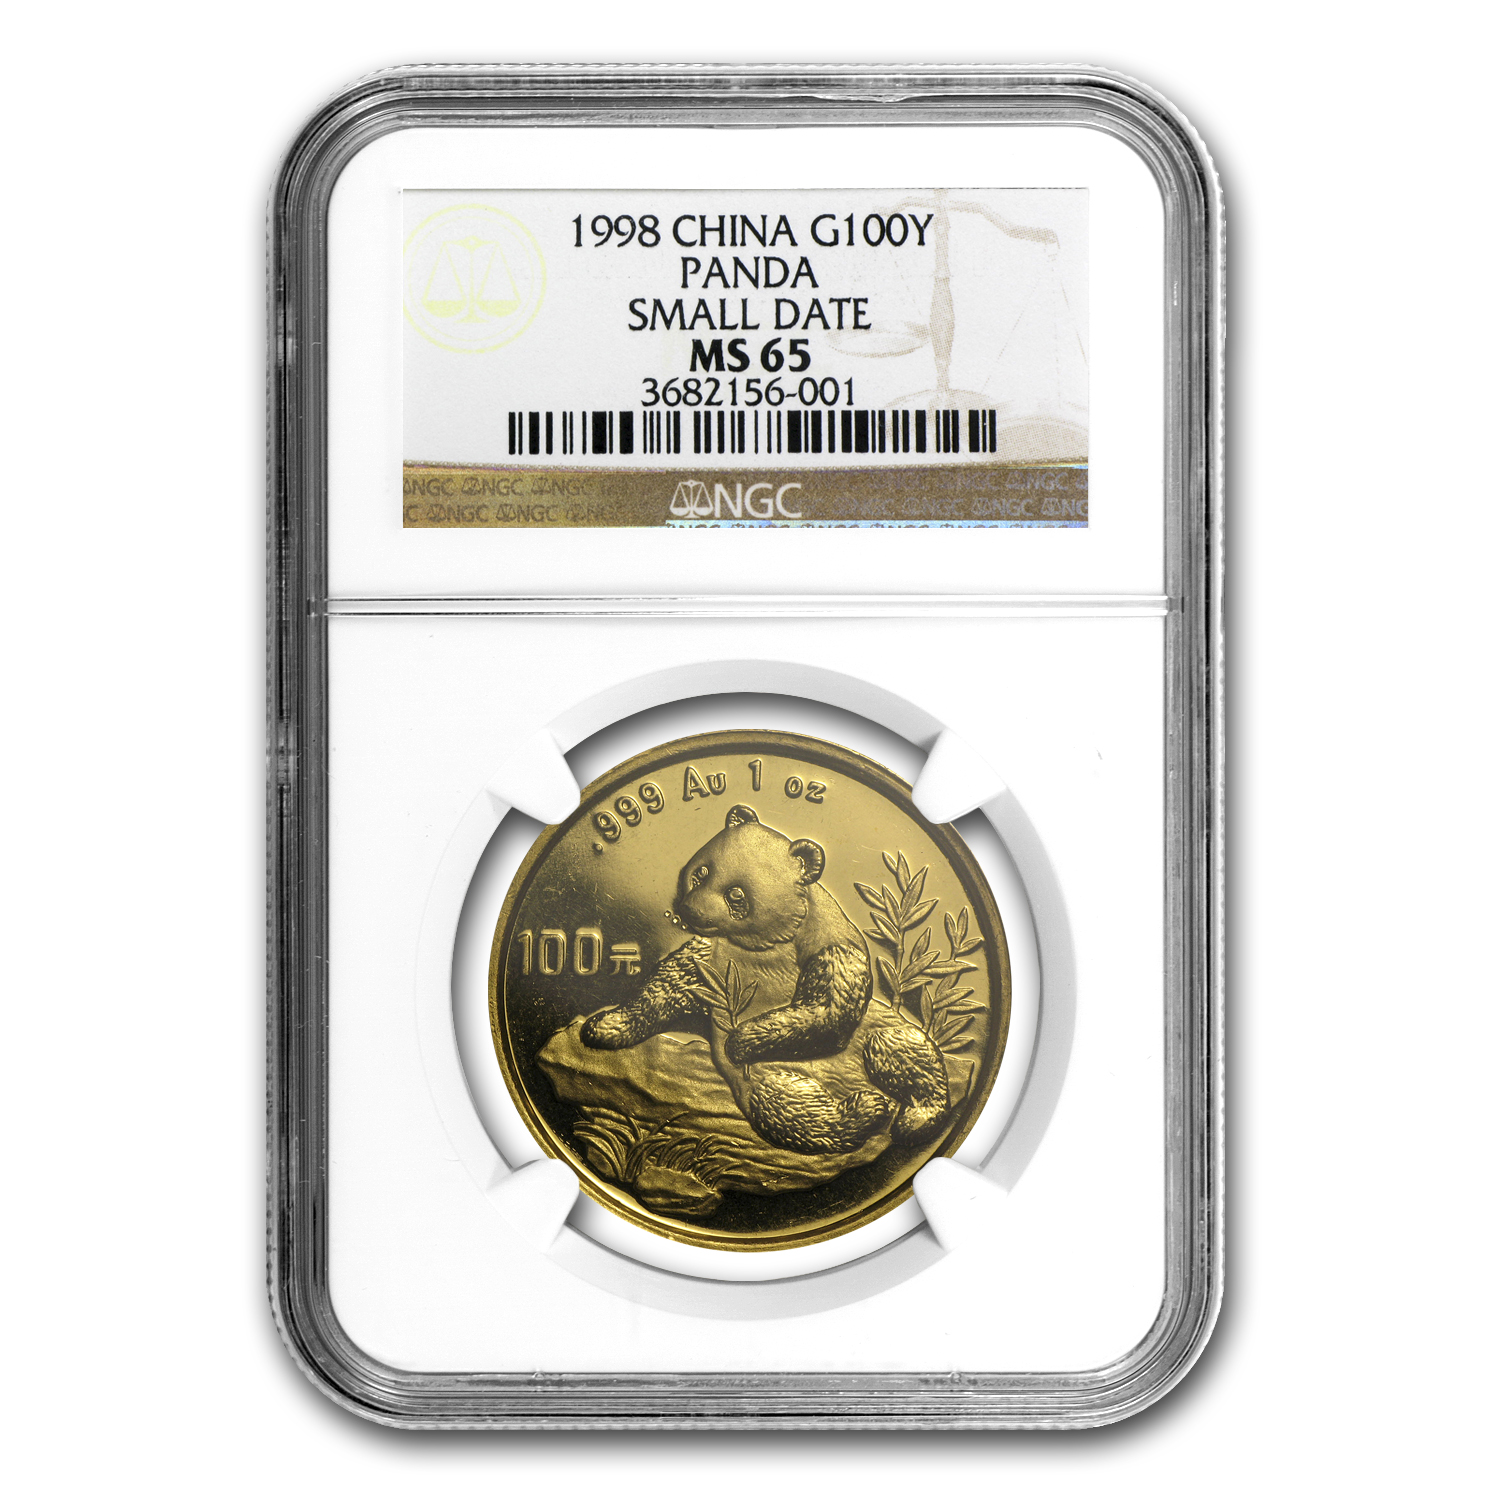 1998 China 1 oz Gold Panda Small Date MS-65 NGC